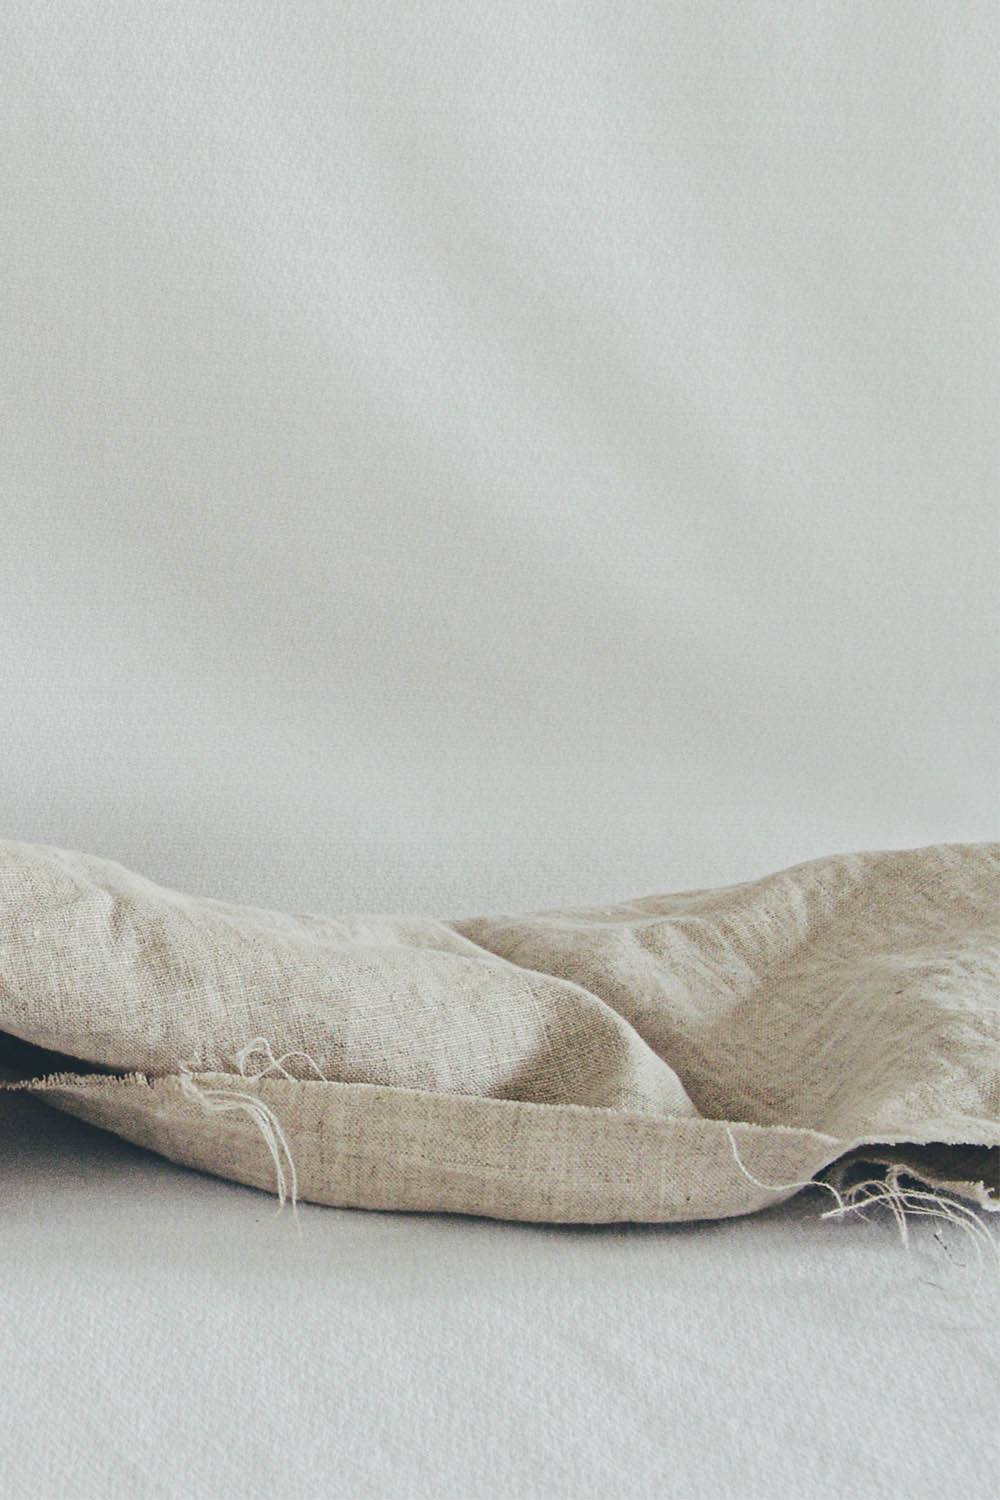 real quality linen wrinkle